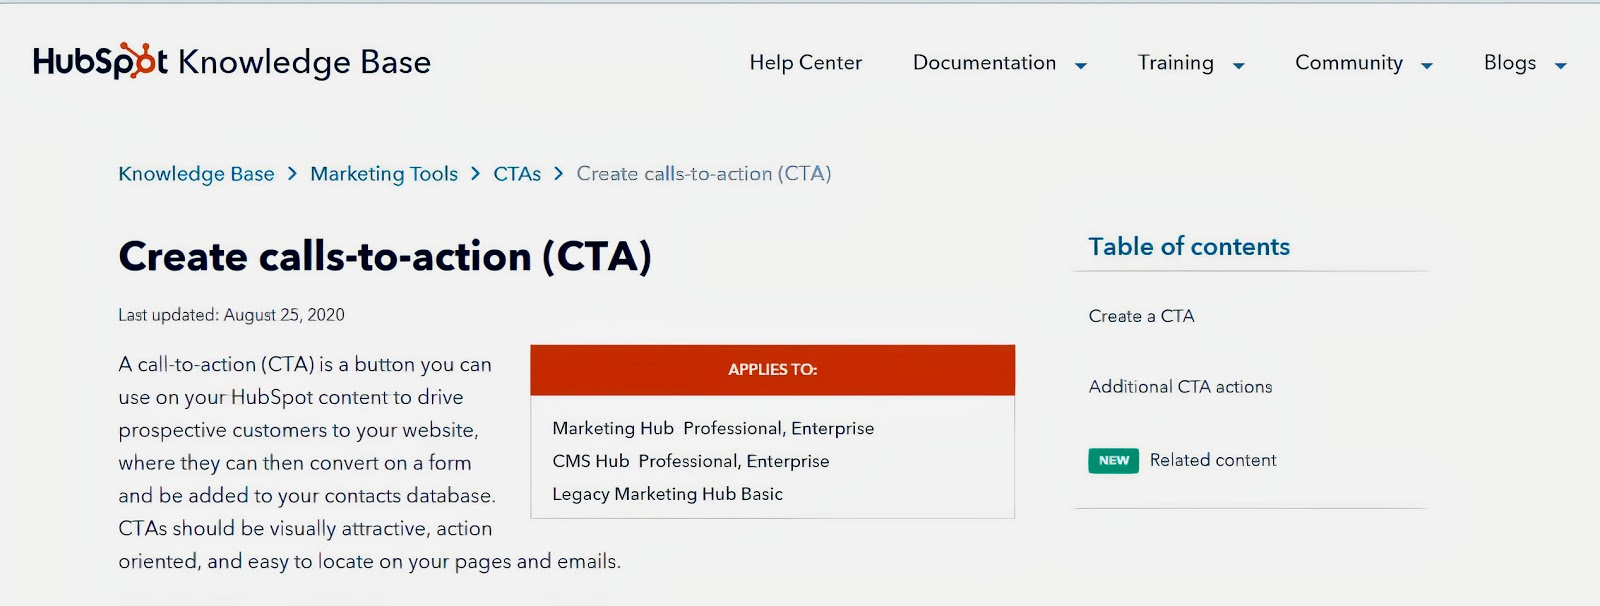 A screenshot of a webpage about creating CTAs, from the HubSpot website